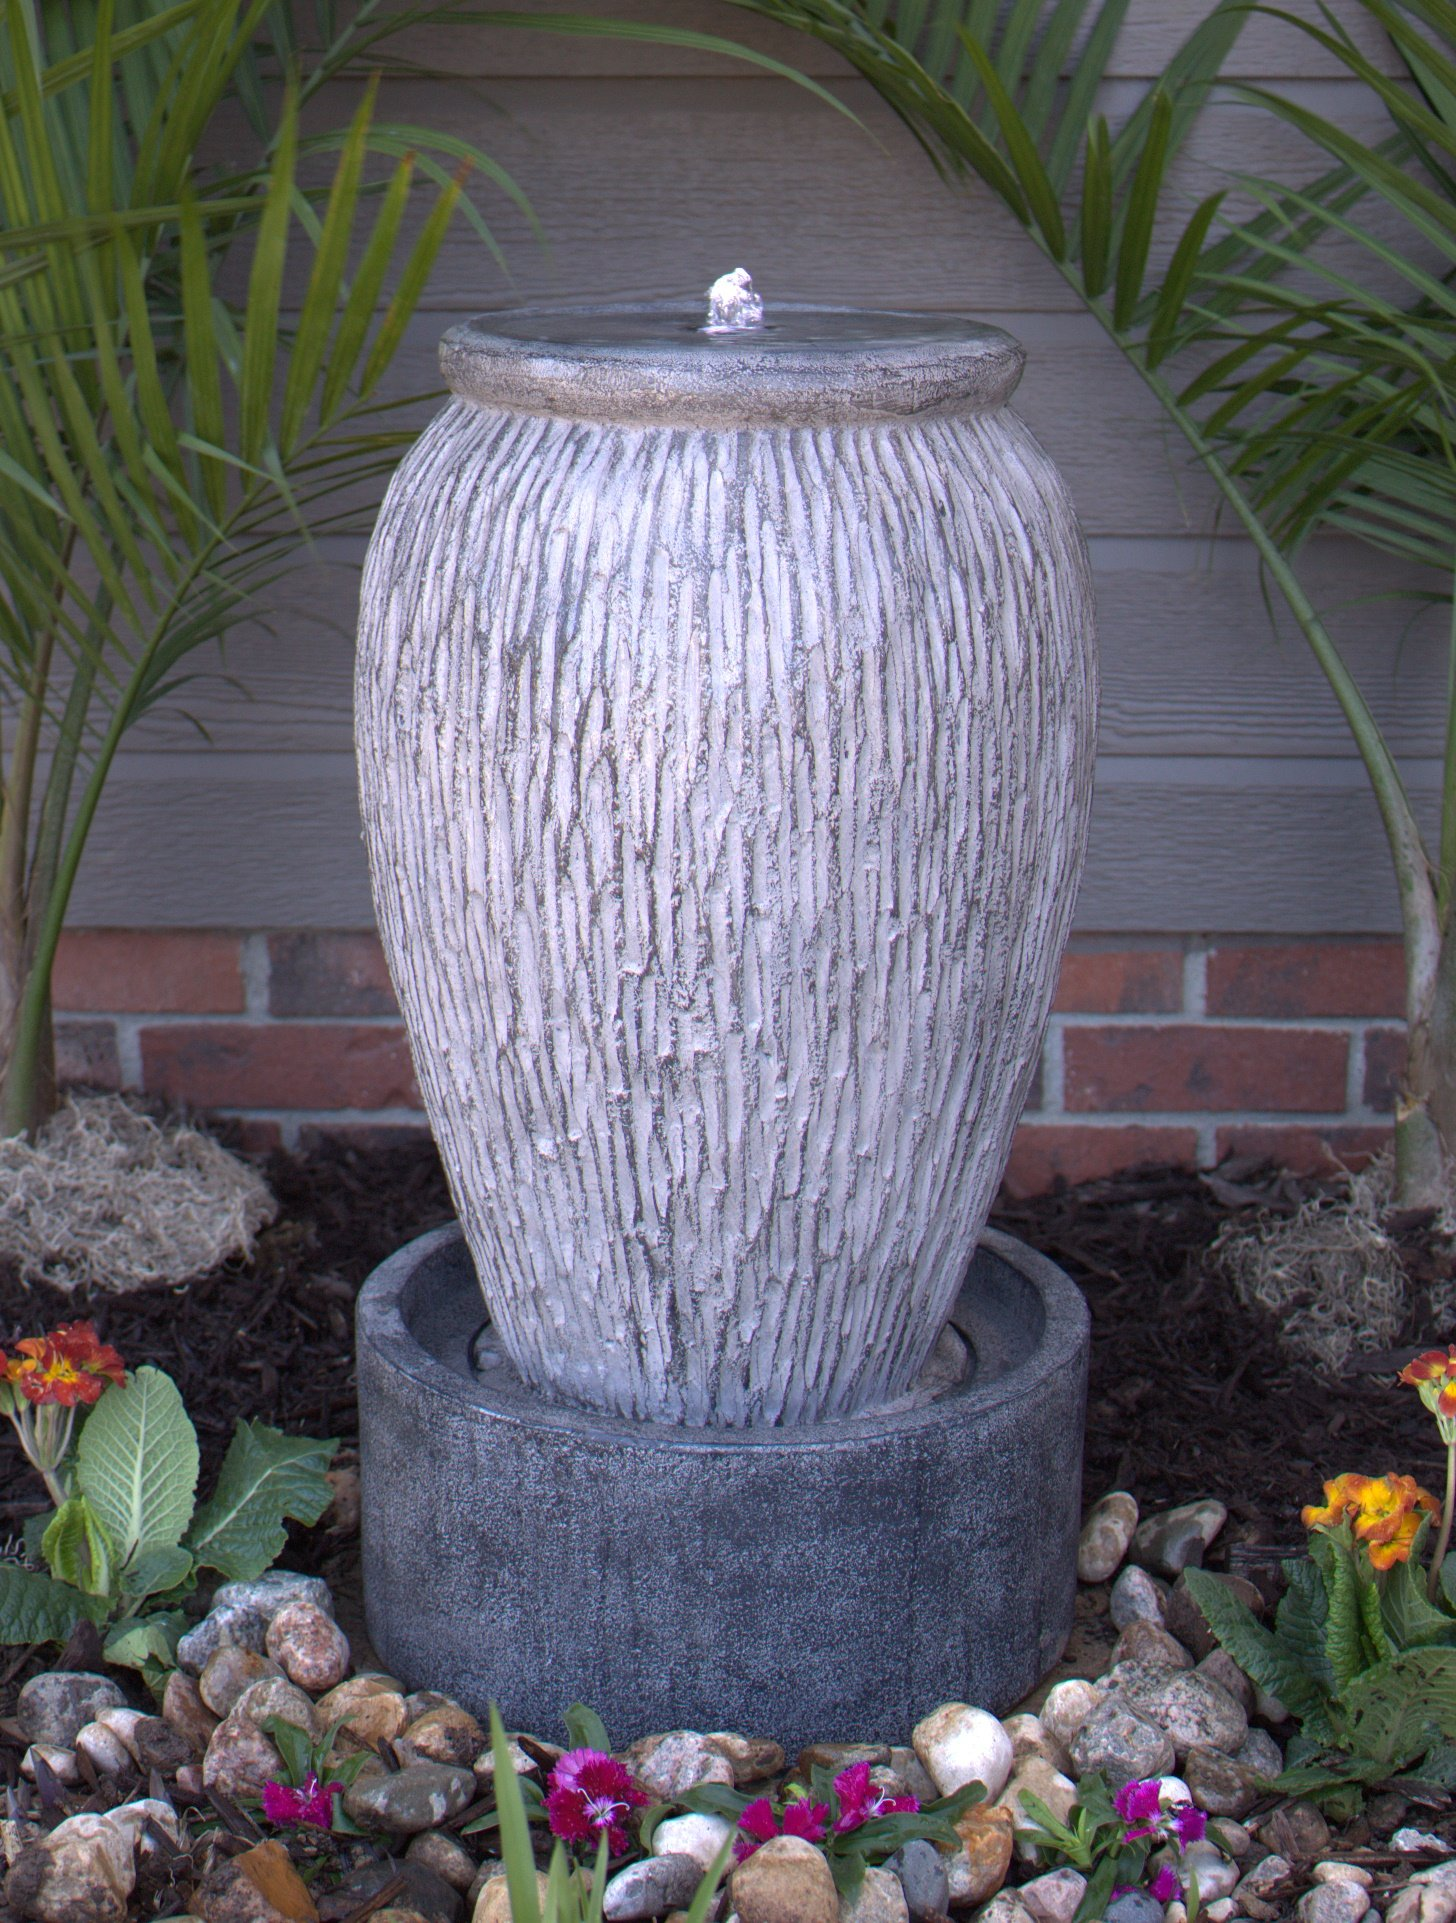 Exclusive Electric Outdoor LED Lighted Stone Finish Urn Fountain by Pebble Lane Living